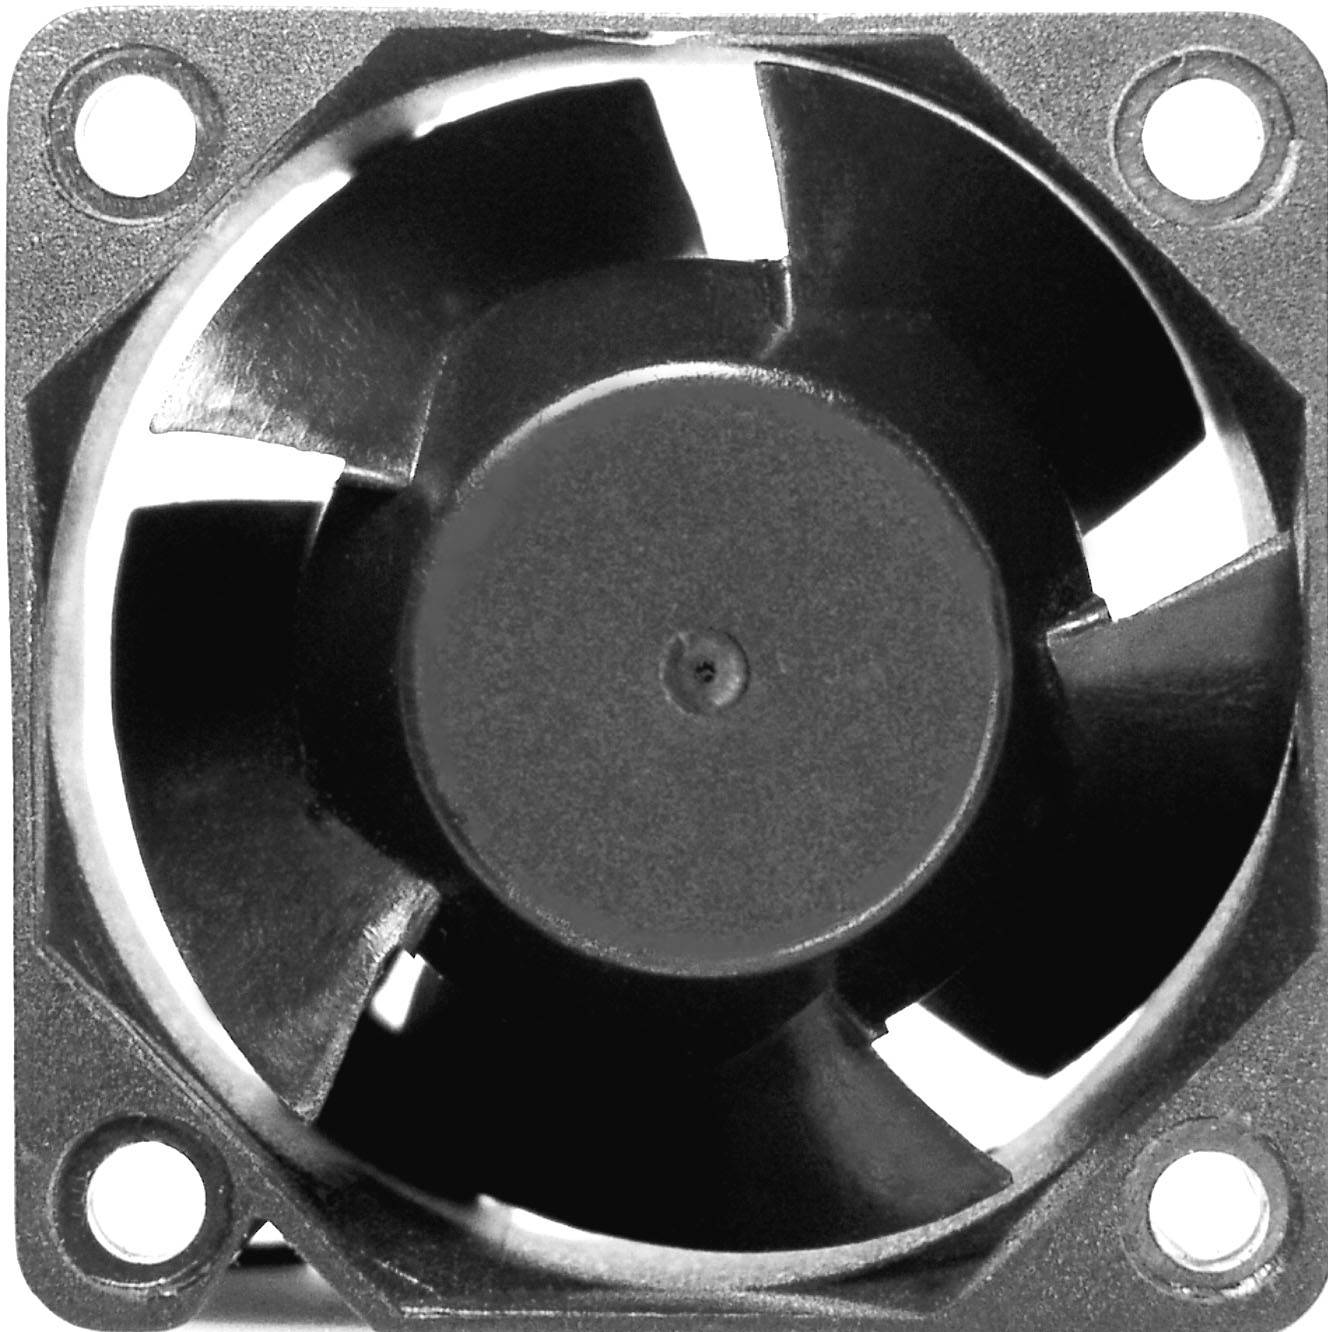 dc fans, cooling fans, power supply fans 4028